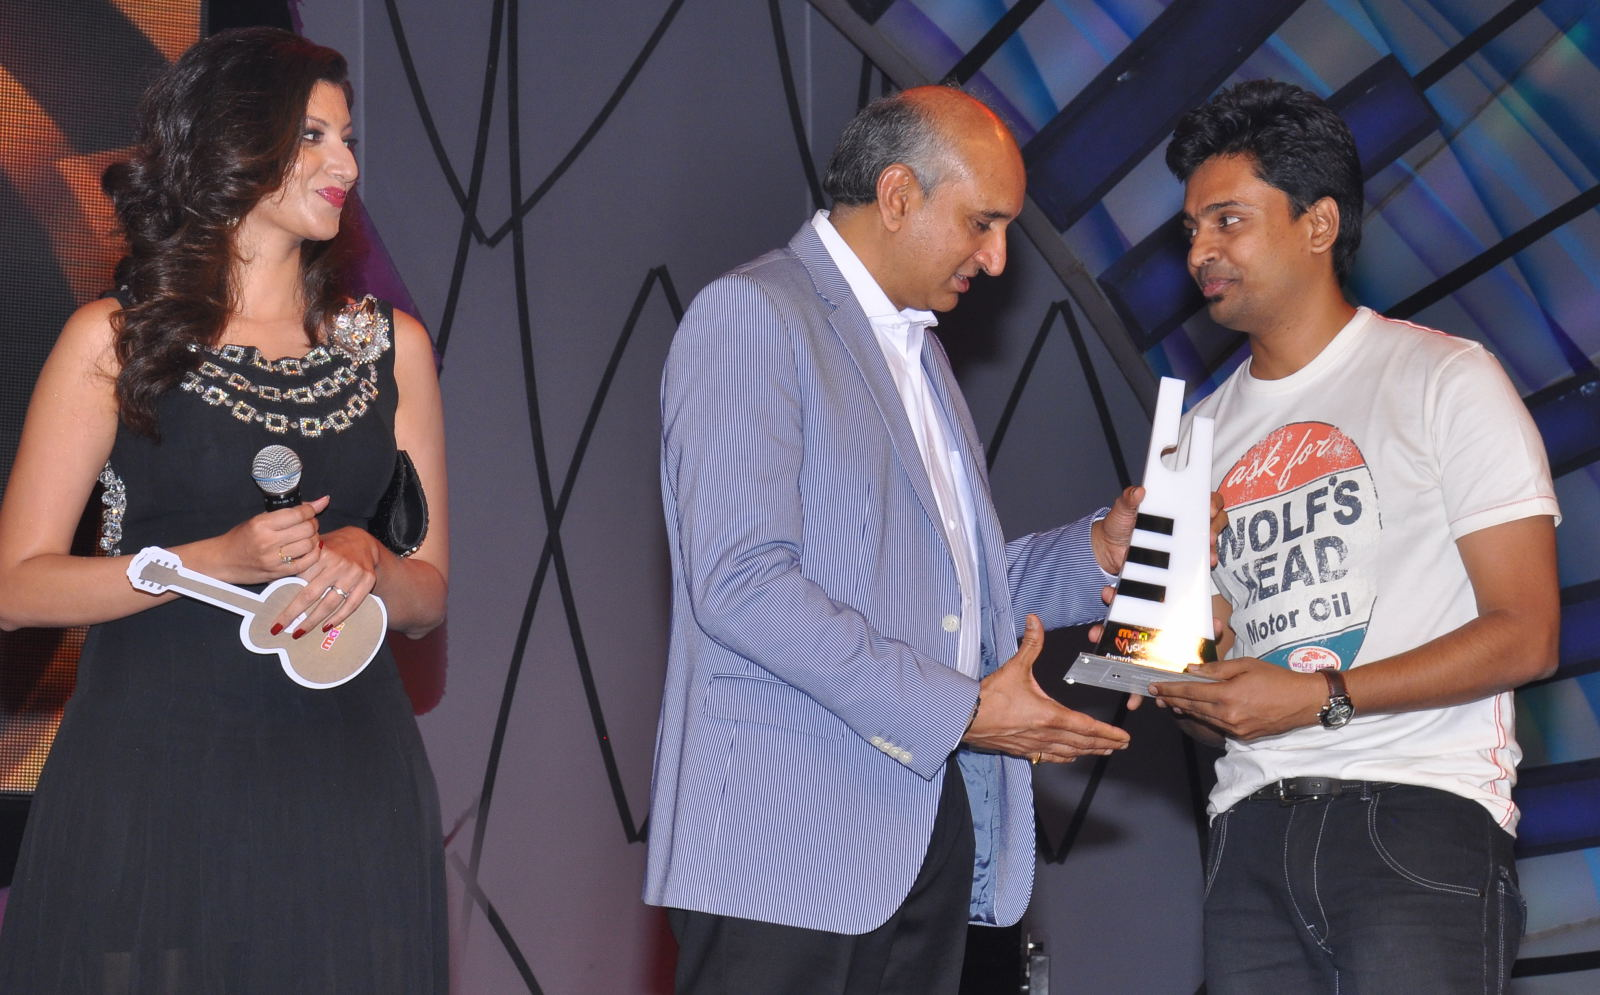 Maa Music Awards 2012 Photo Gallery-HQ-Photo-19